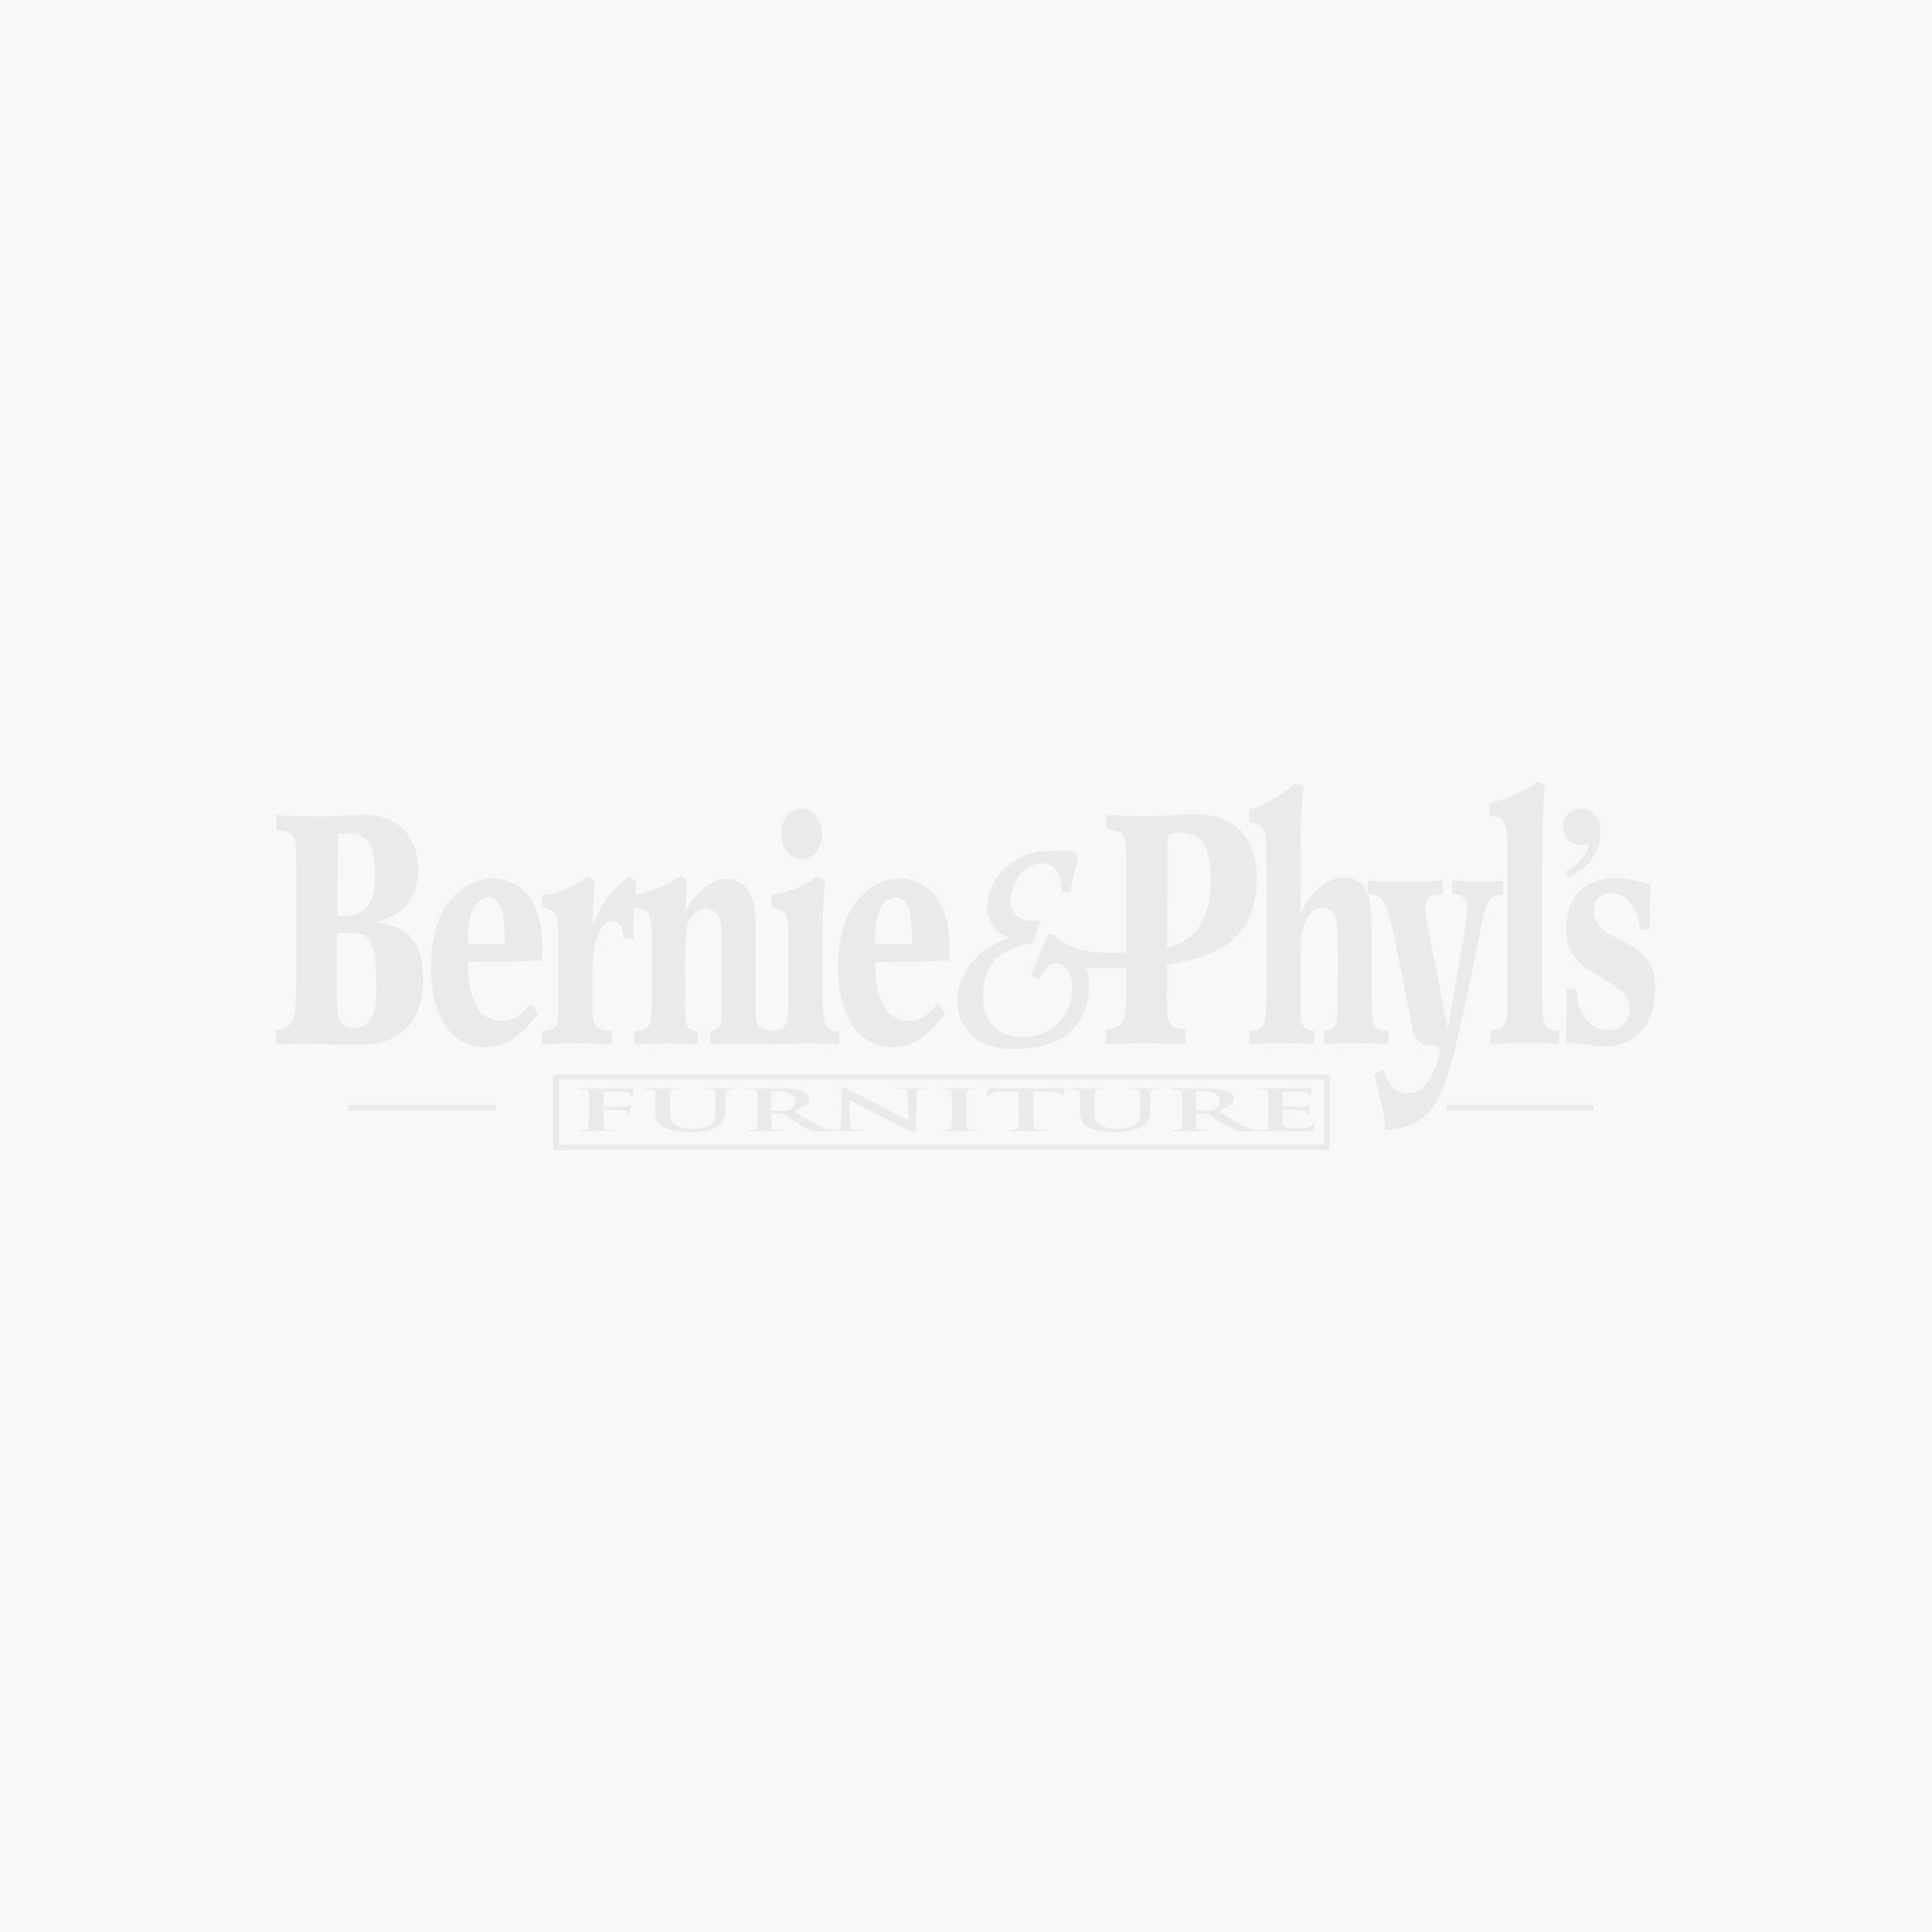 StretchWick 3.0 PERFORMANCE Mattress Protector